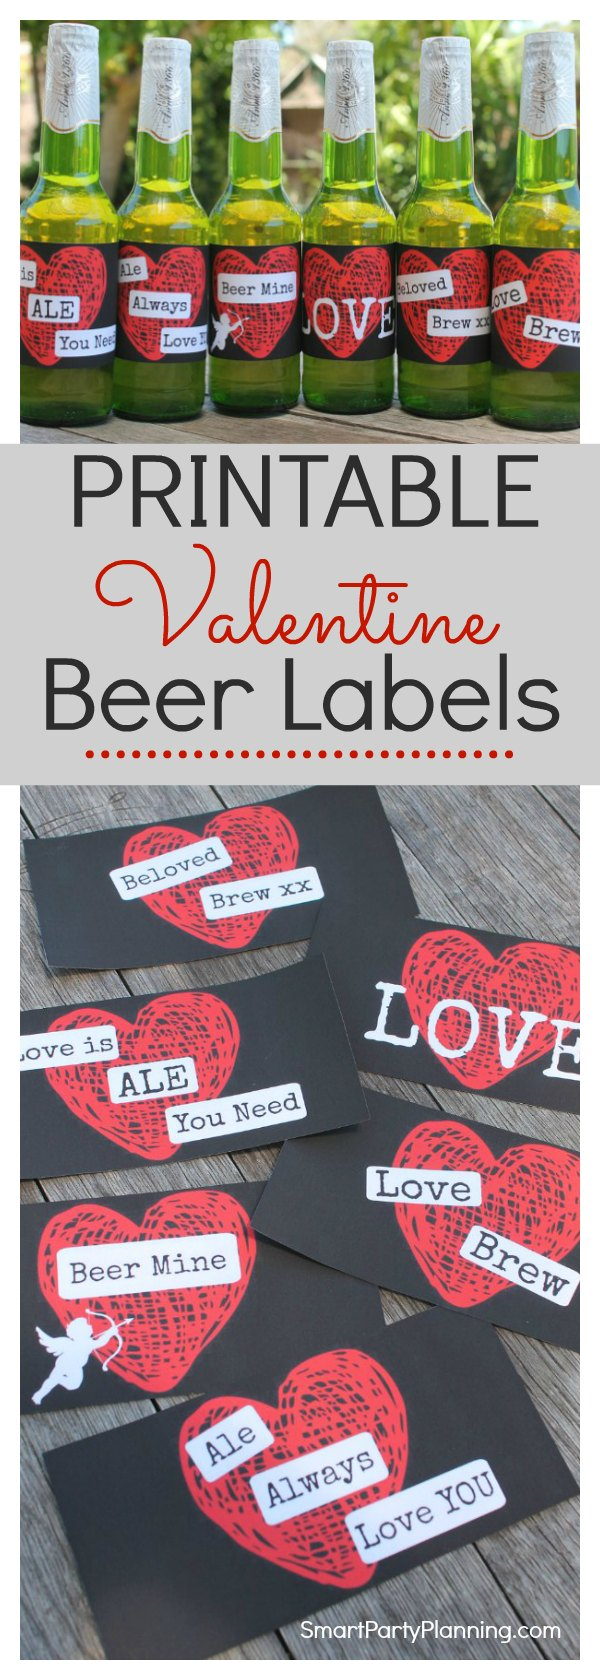 Printable Valentines Day Beer Labels